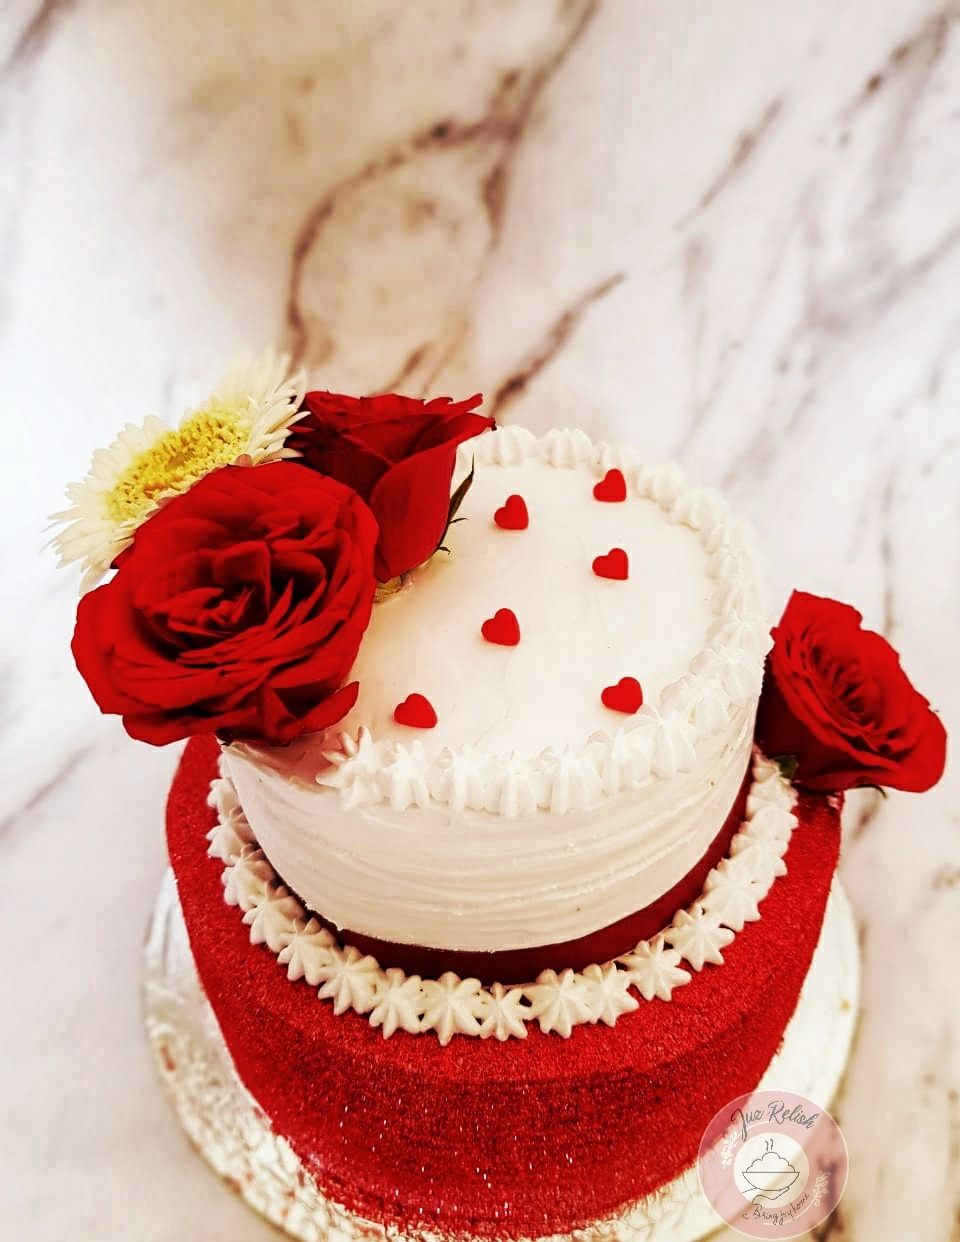 Engagement or Wedding Cake Designs, Images, Price Near Me